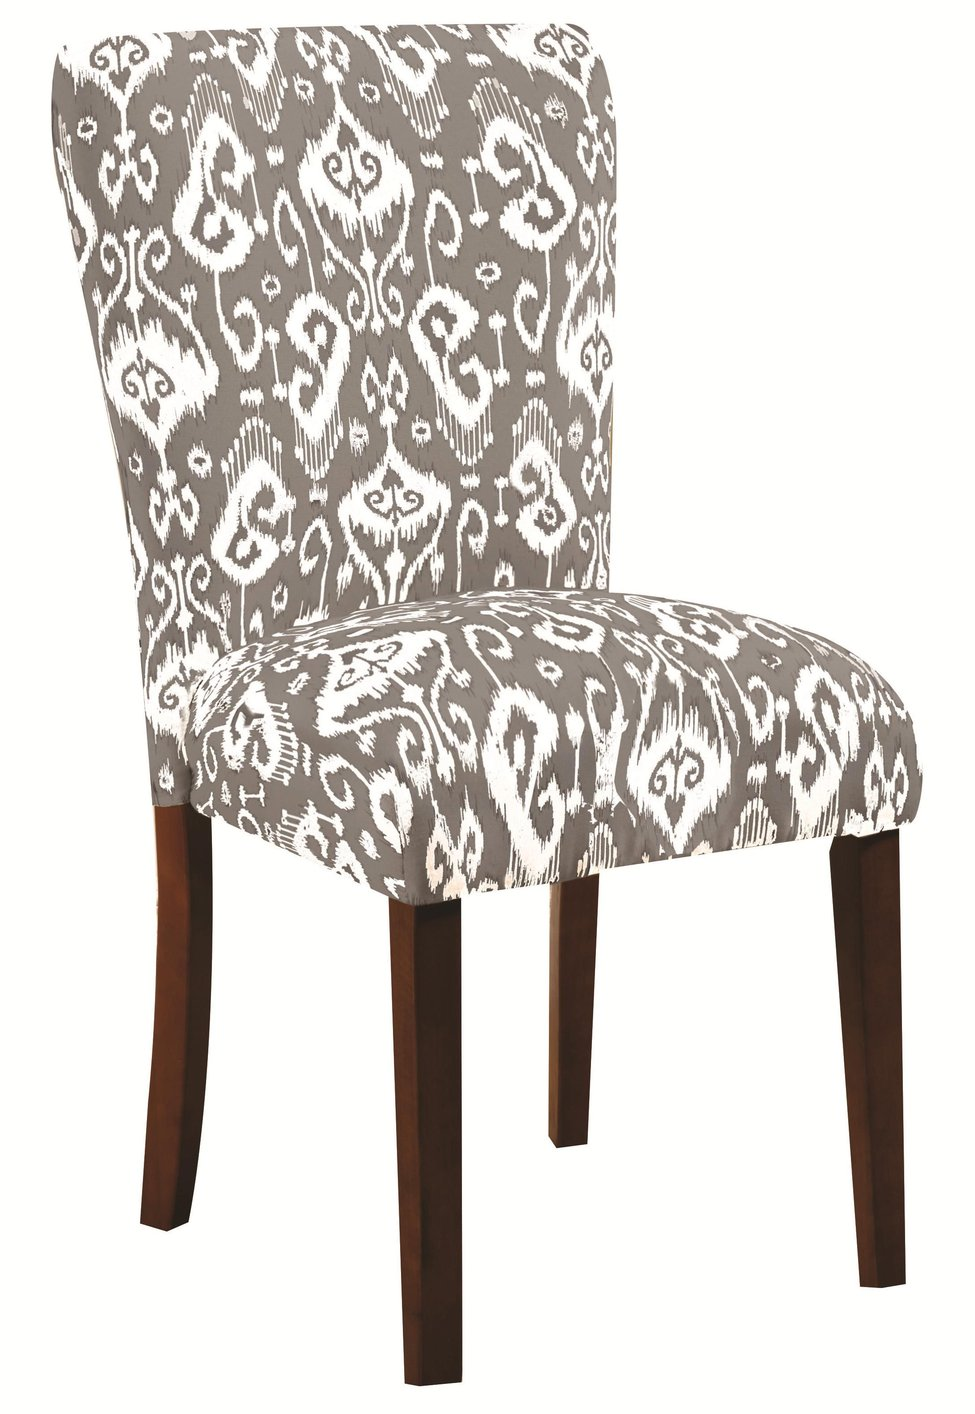 Coaster 104049 grey fabric dining chair steal a sofa furniture outlet los angeles ca - Grey fabric dining room chairs designs ...